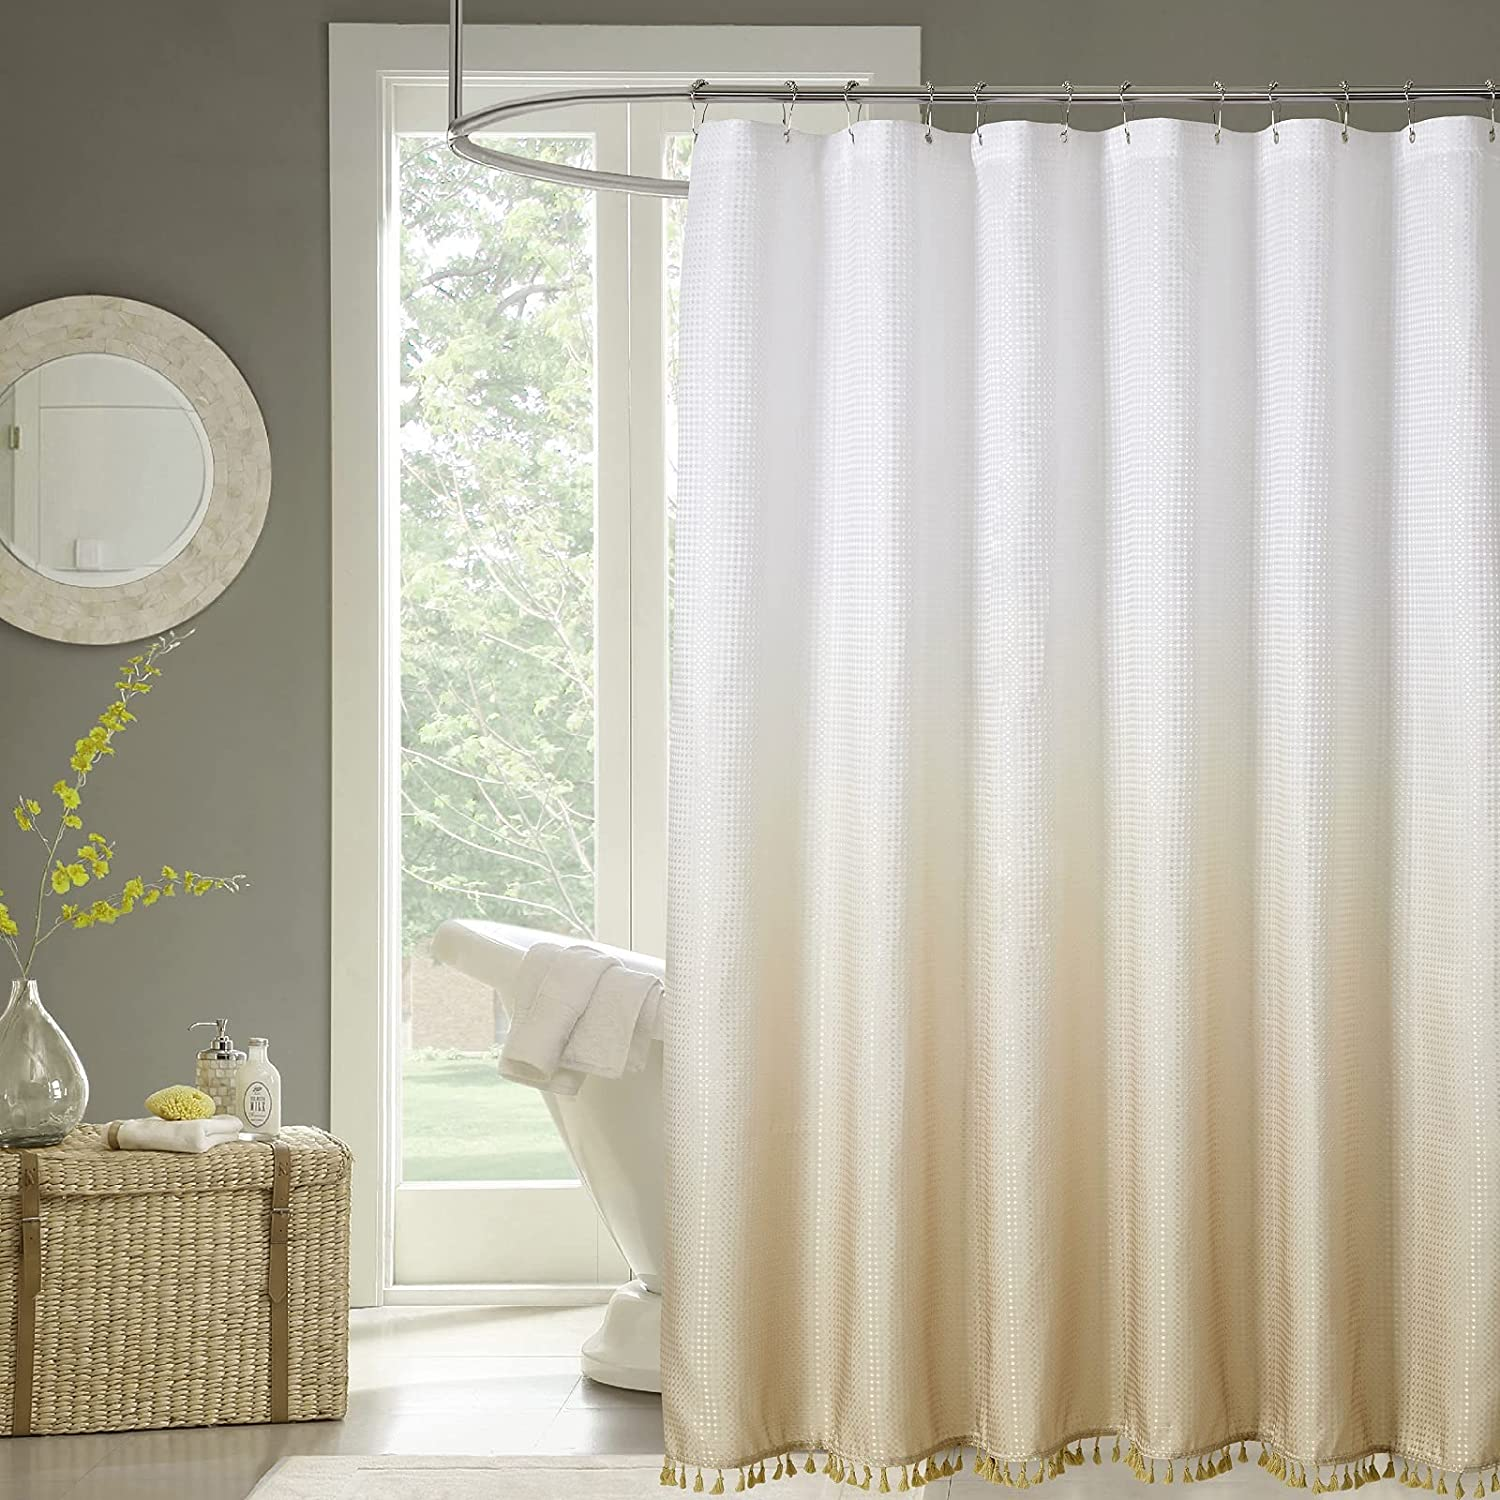 COSEVIER Ombre Choice sale Waffle Shower Curtain for Bathroom Mo with Tassel